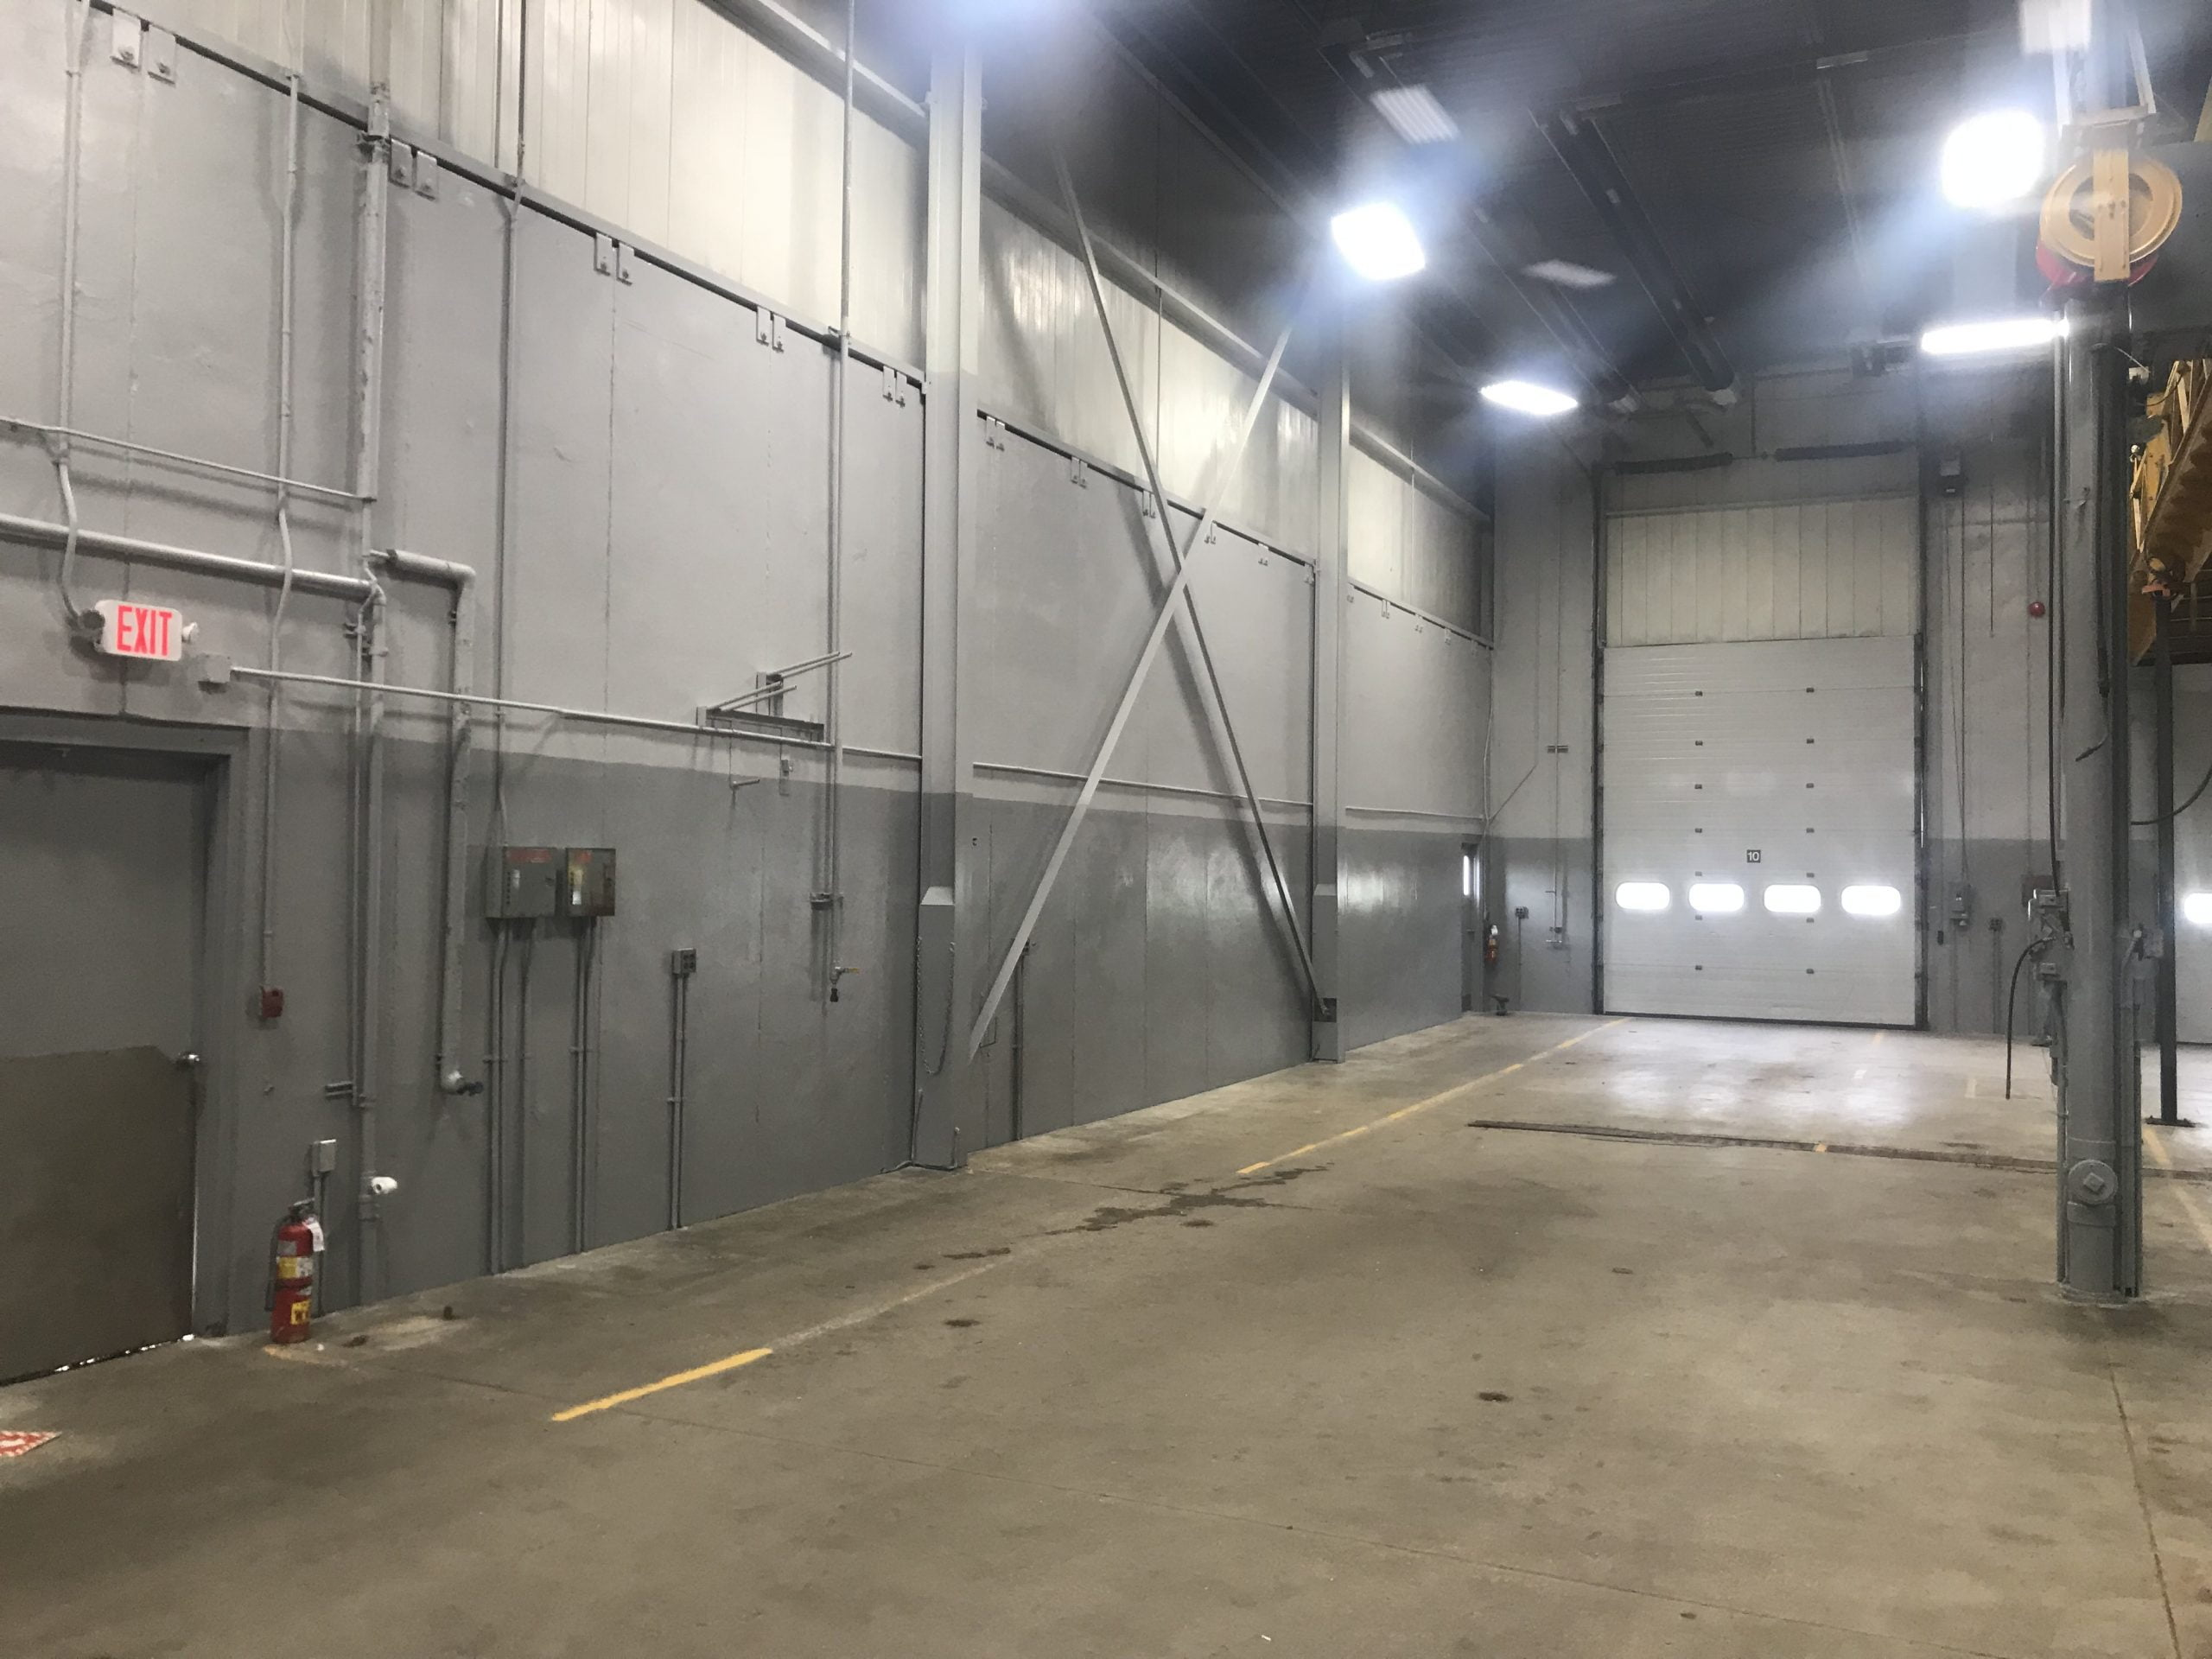 Commercial Garage After Commercial Painting, Industrial Cleaning, And Dry Ice Blasting